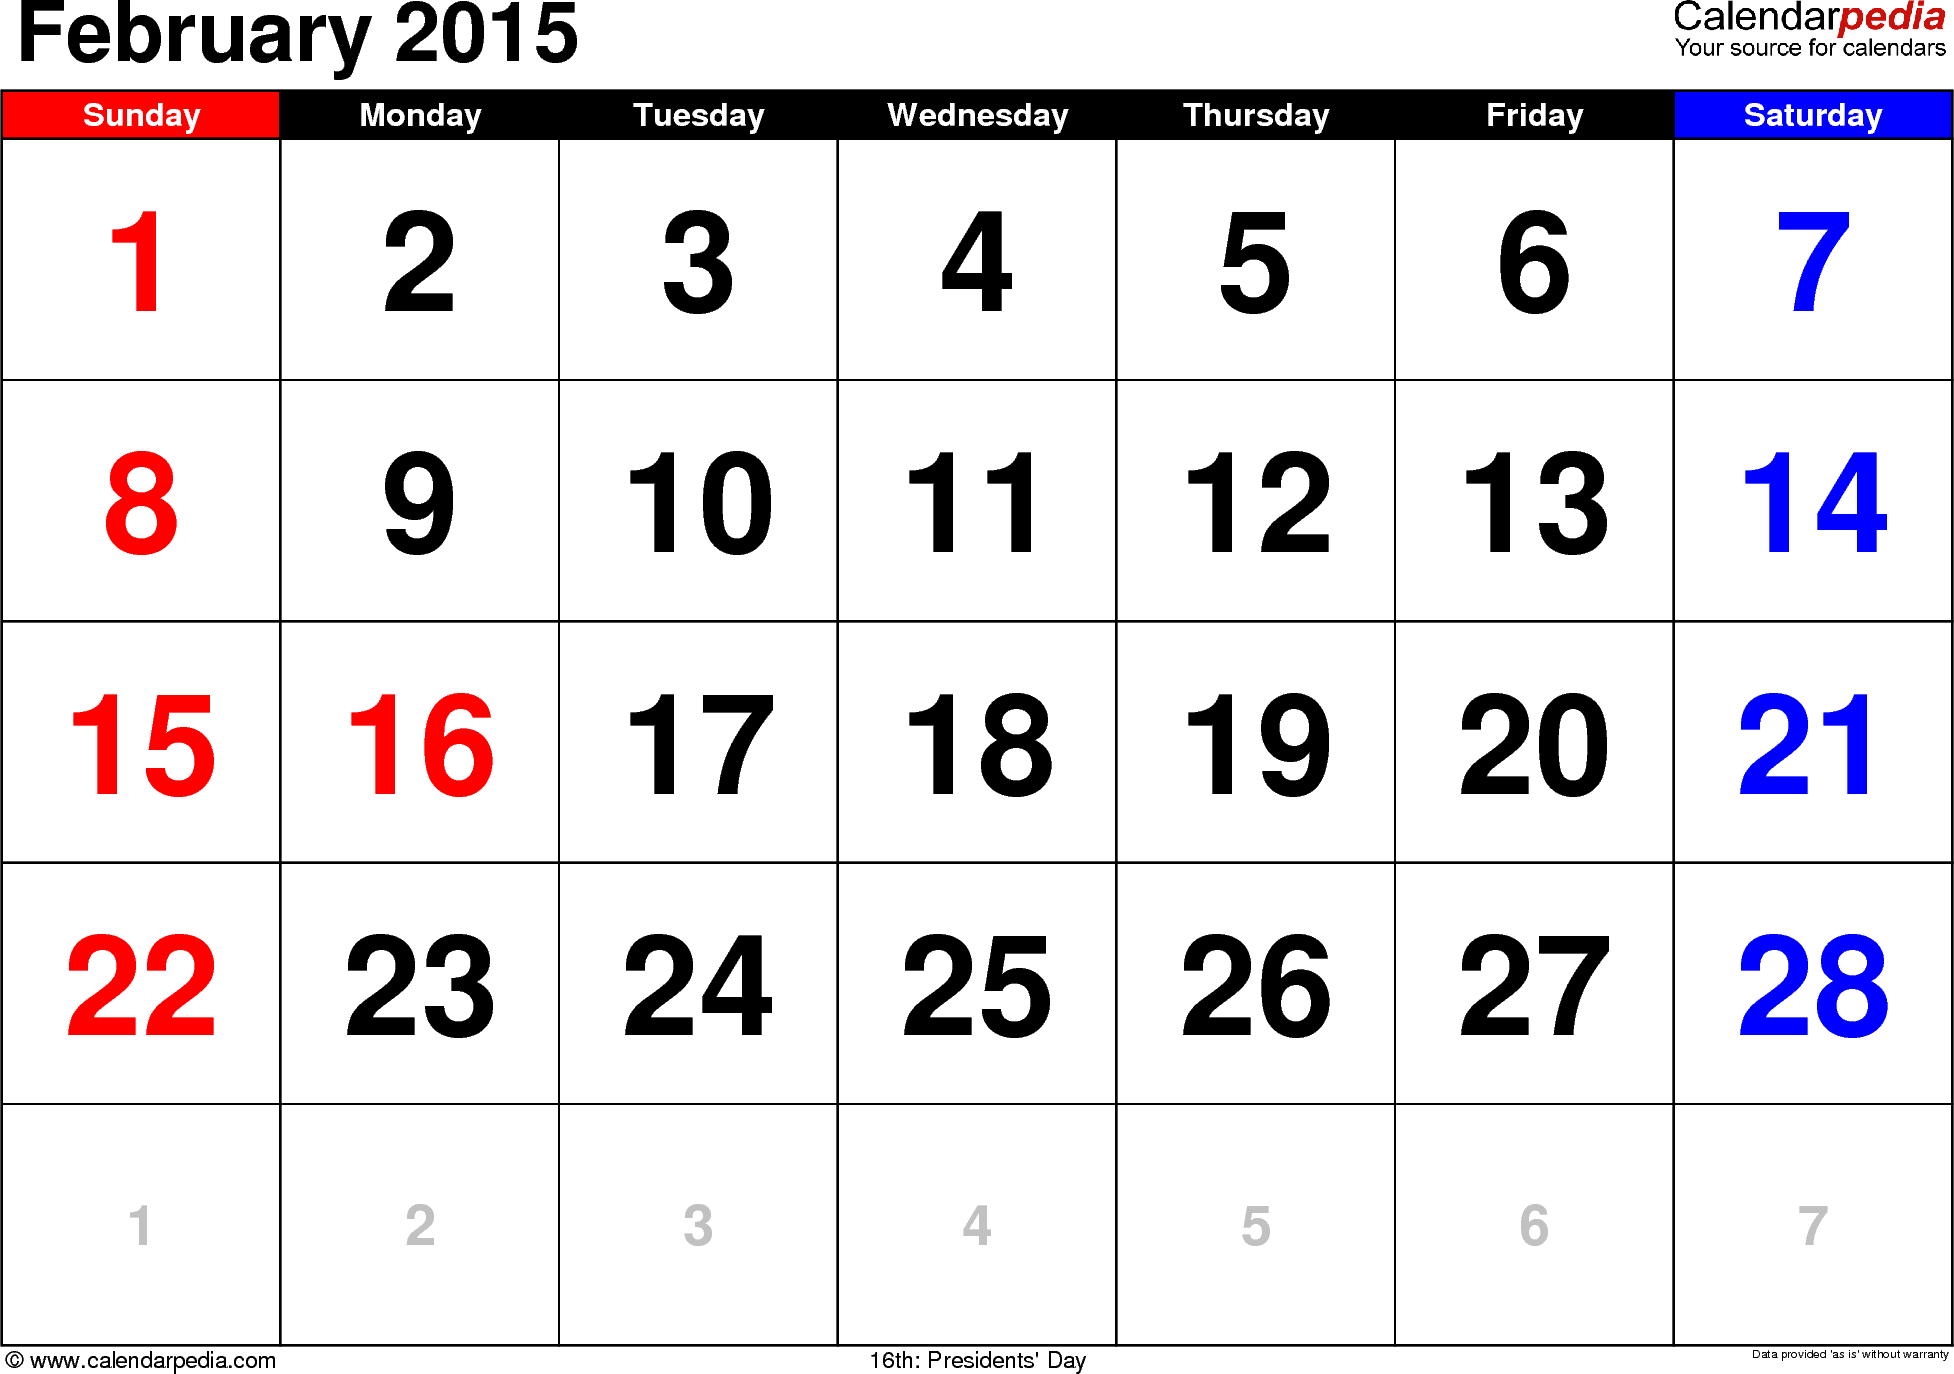 2015 february calendar template page 2 of 2 when is calendar MEMES